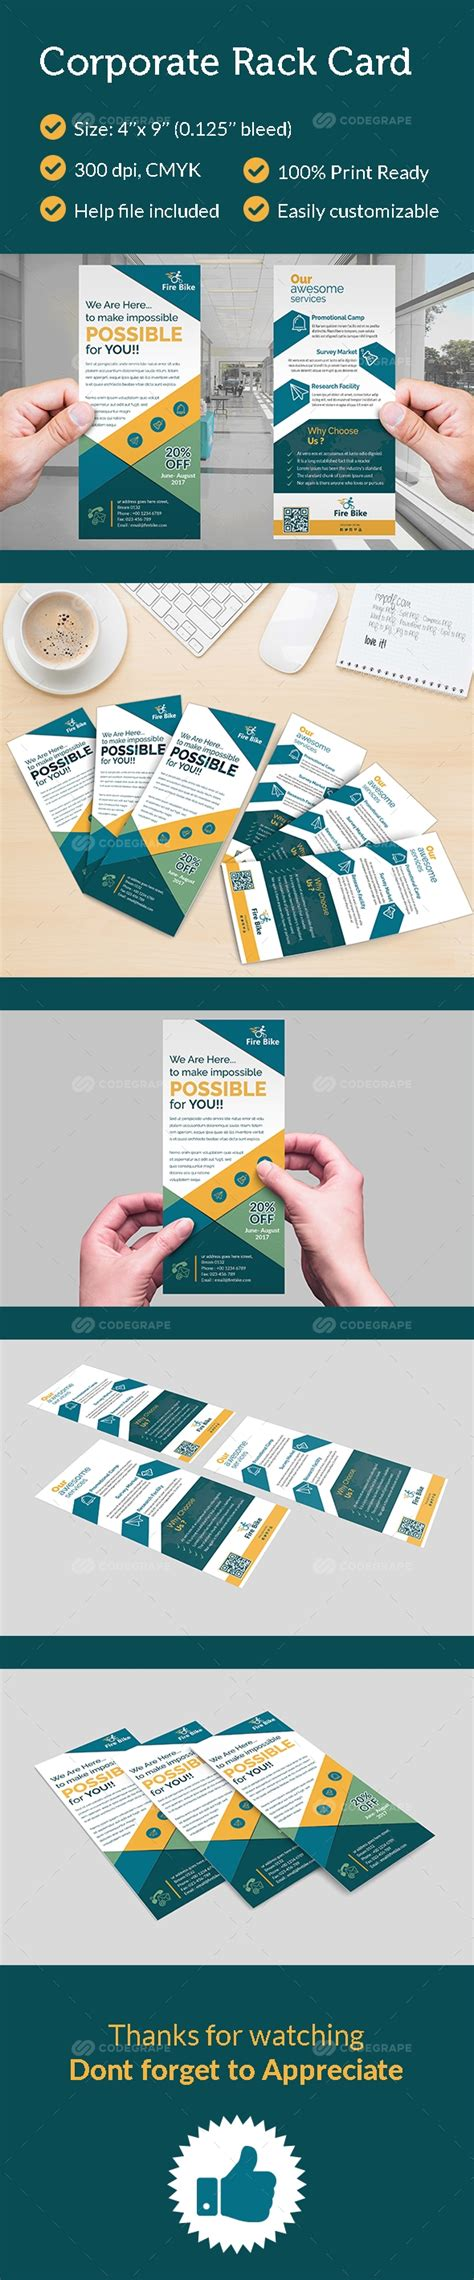 4 x 9 rack card with bleed psd template corporate rack card print codegrape